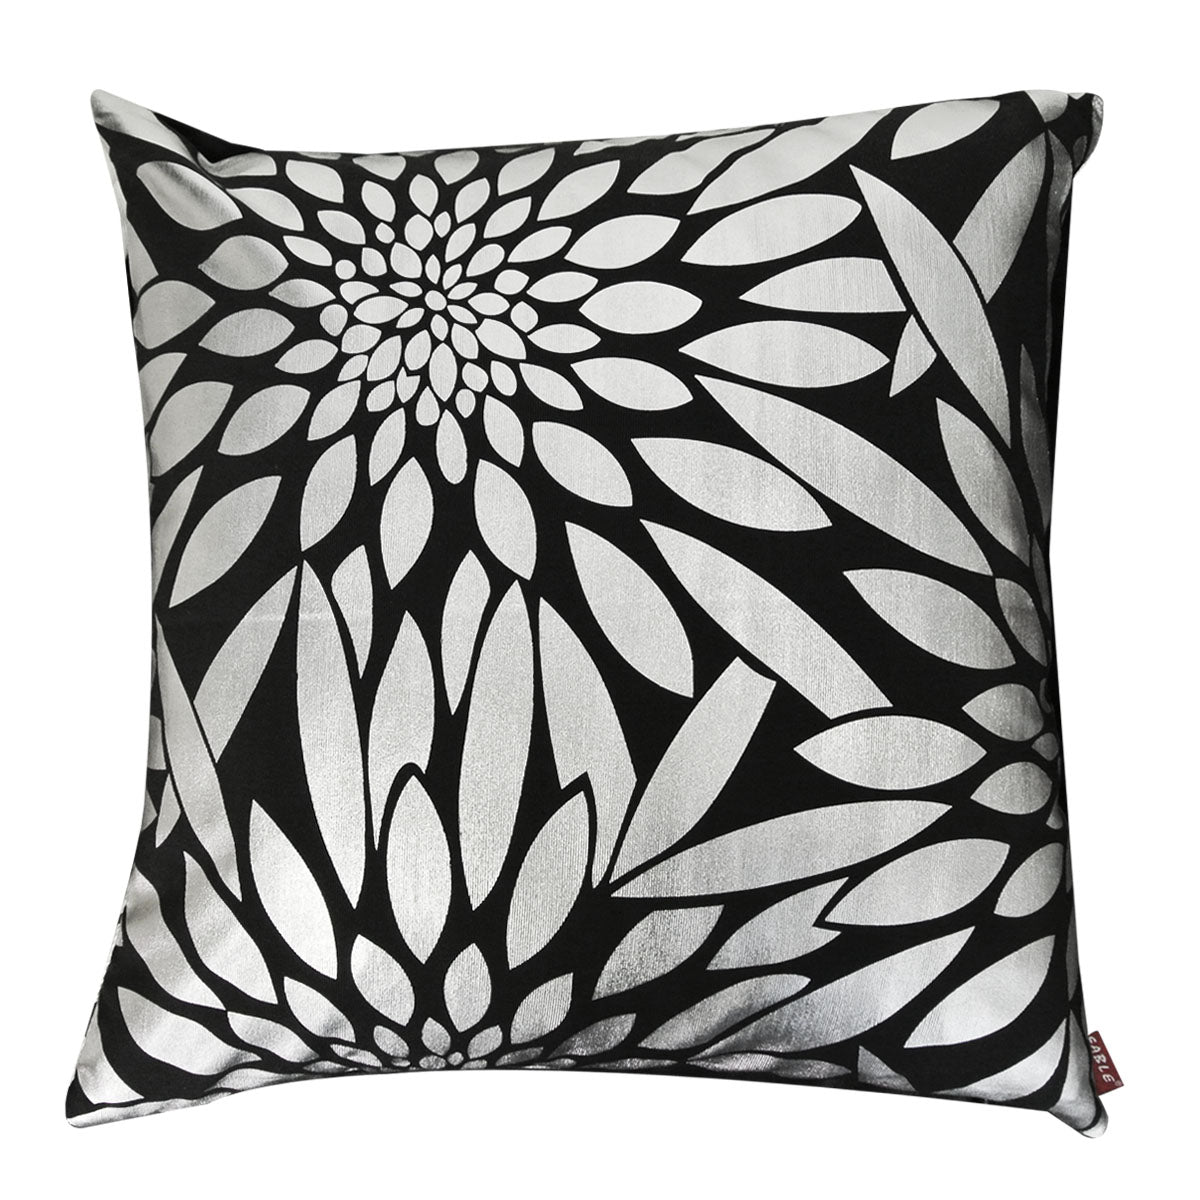 Kella Milla Silver Bloom Throw Pillow Cover